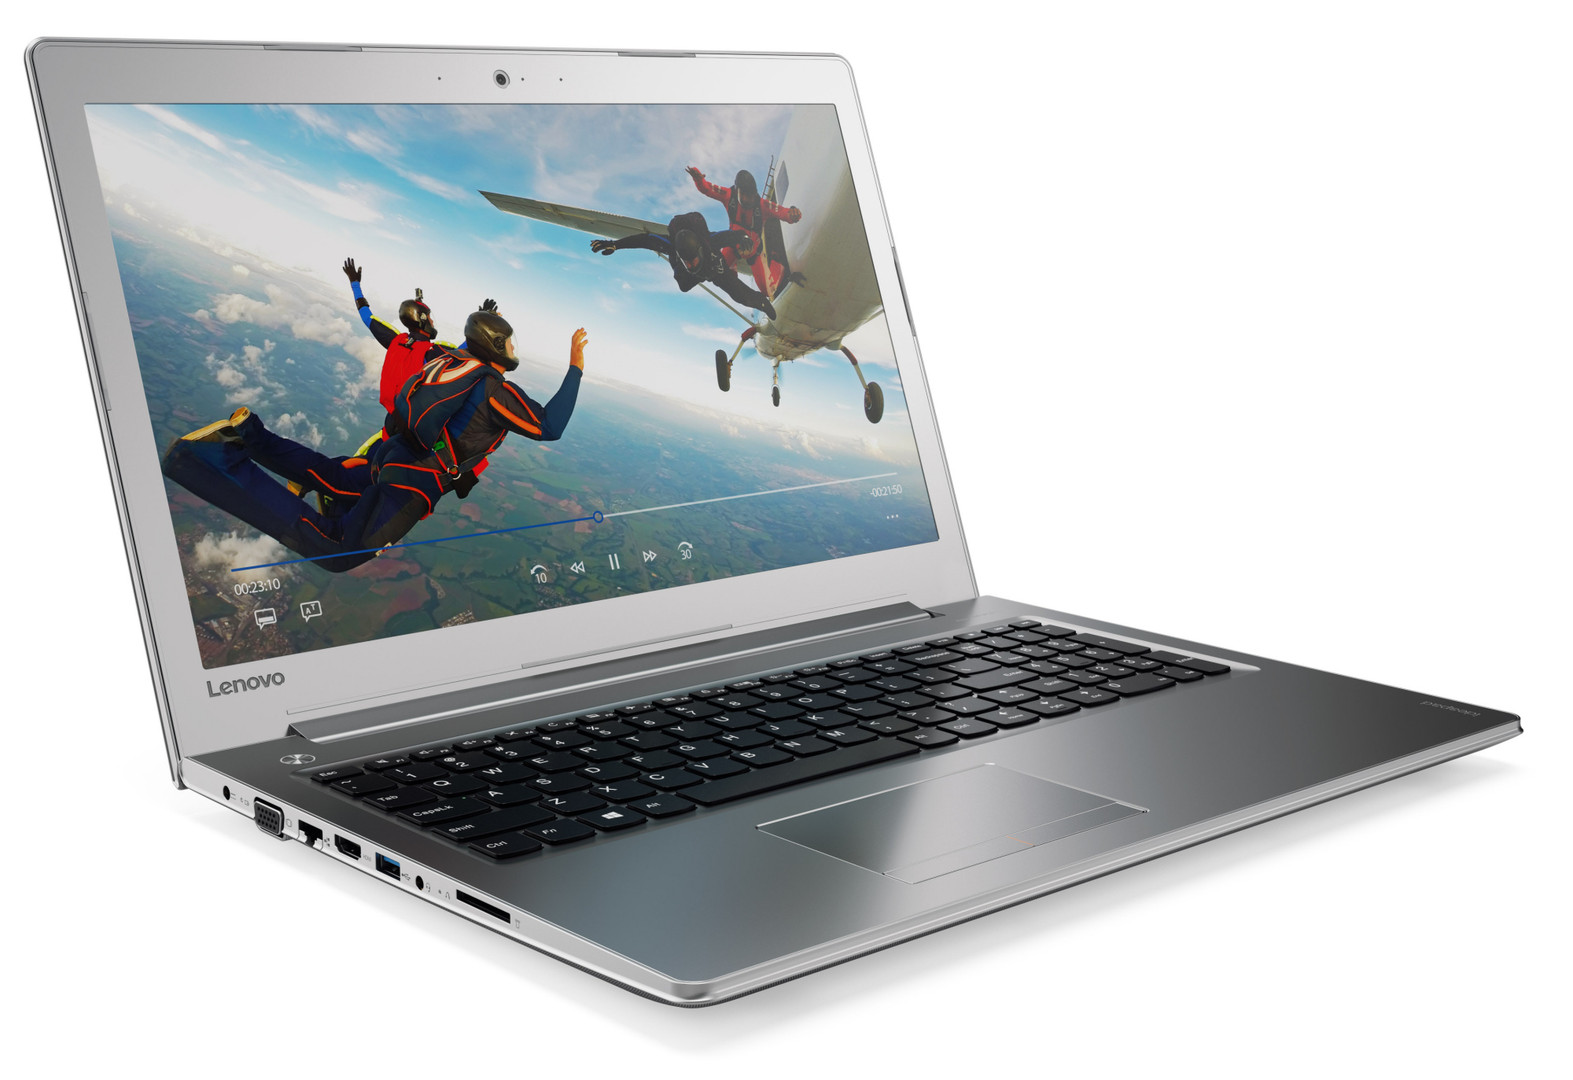 Lenovo IdeaPad 500-15ISK Realtek Camera Drivers for Windows 10